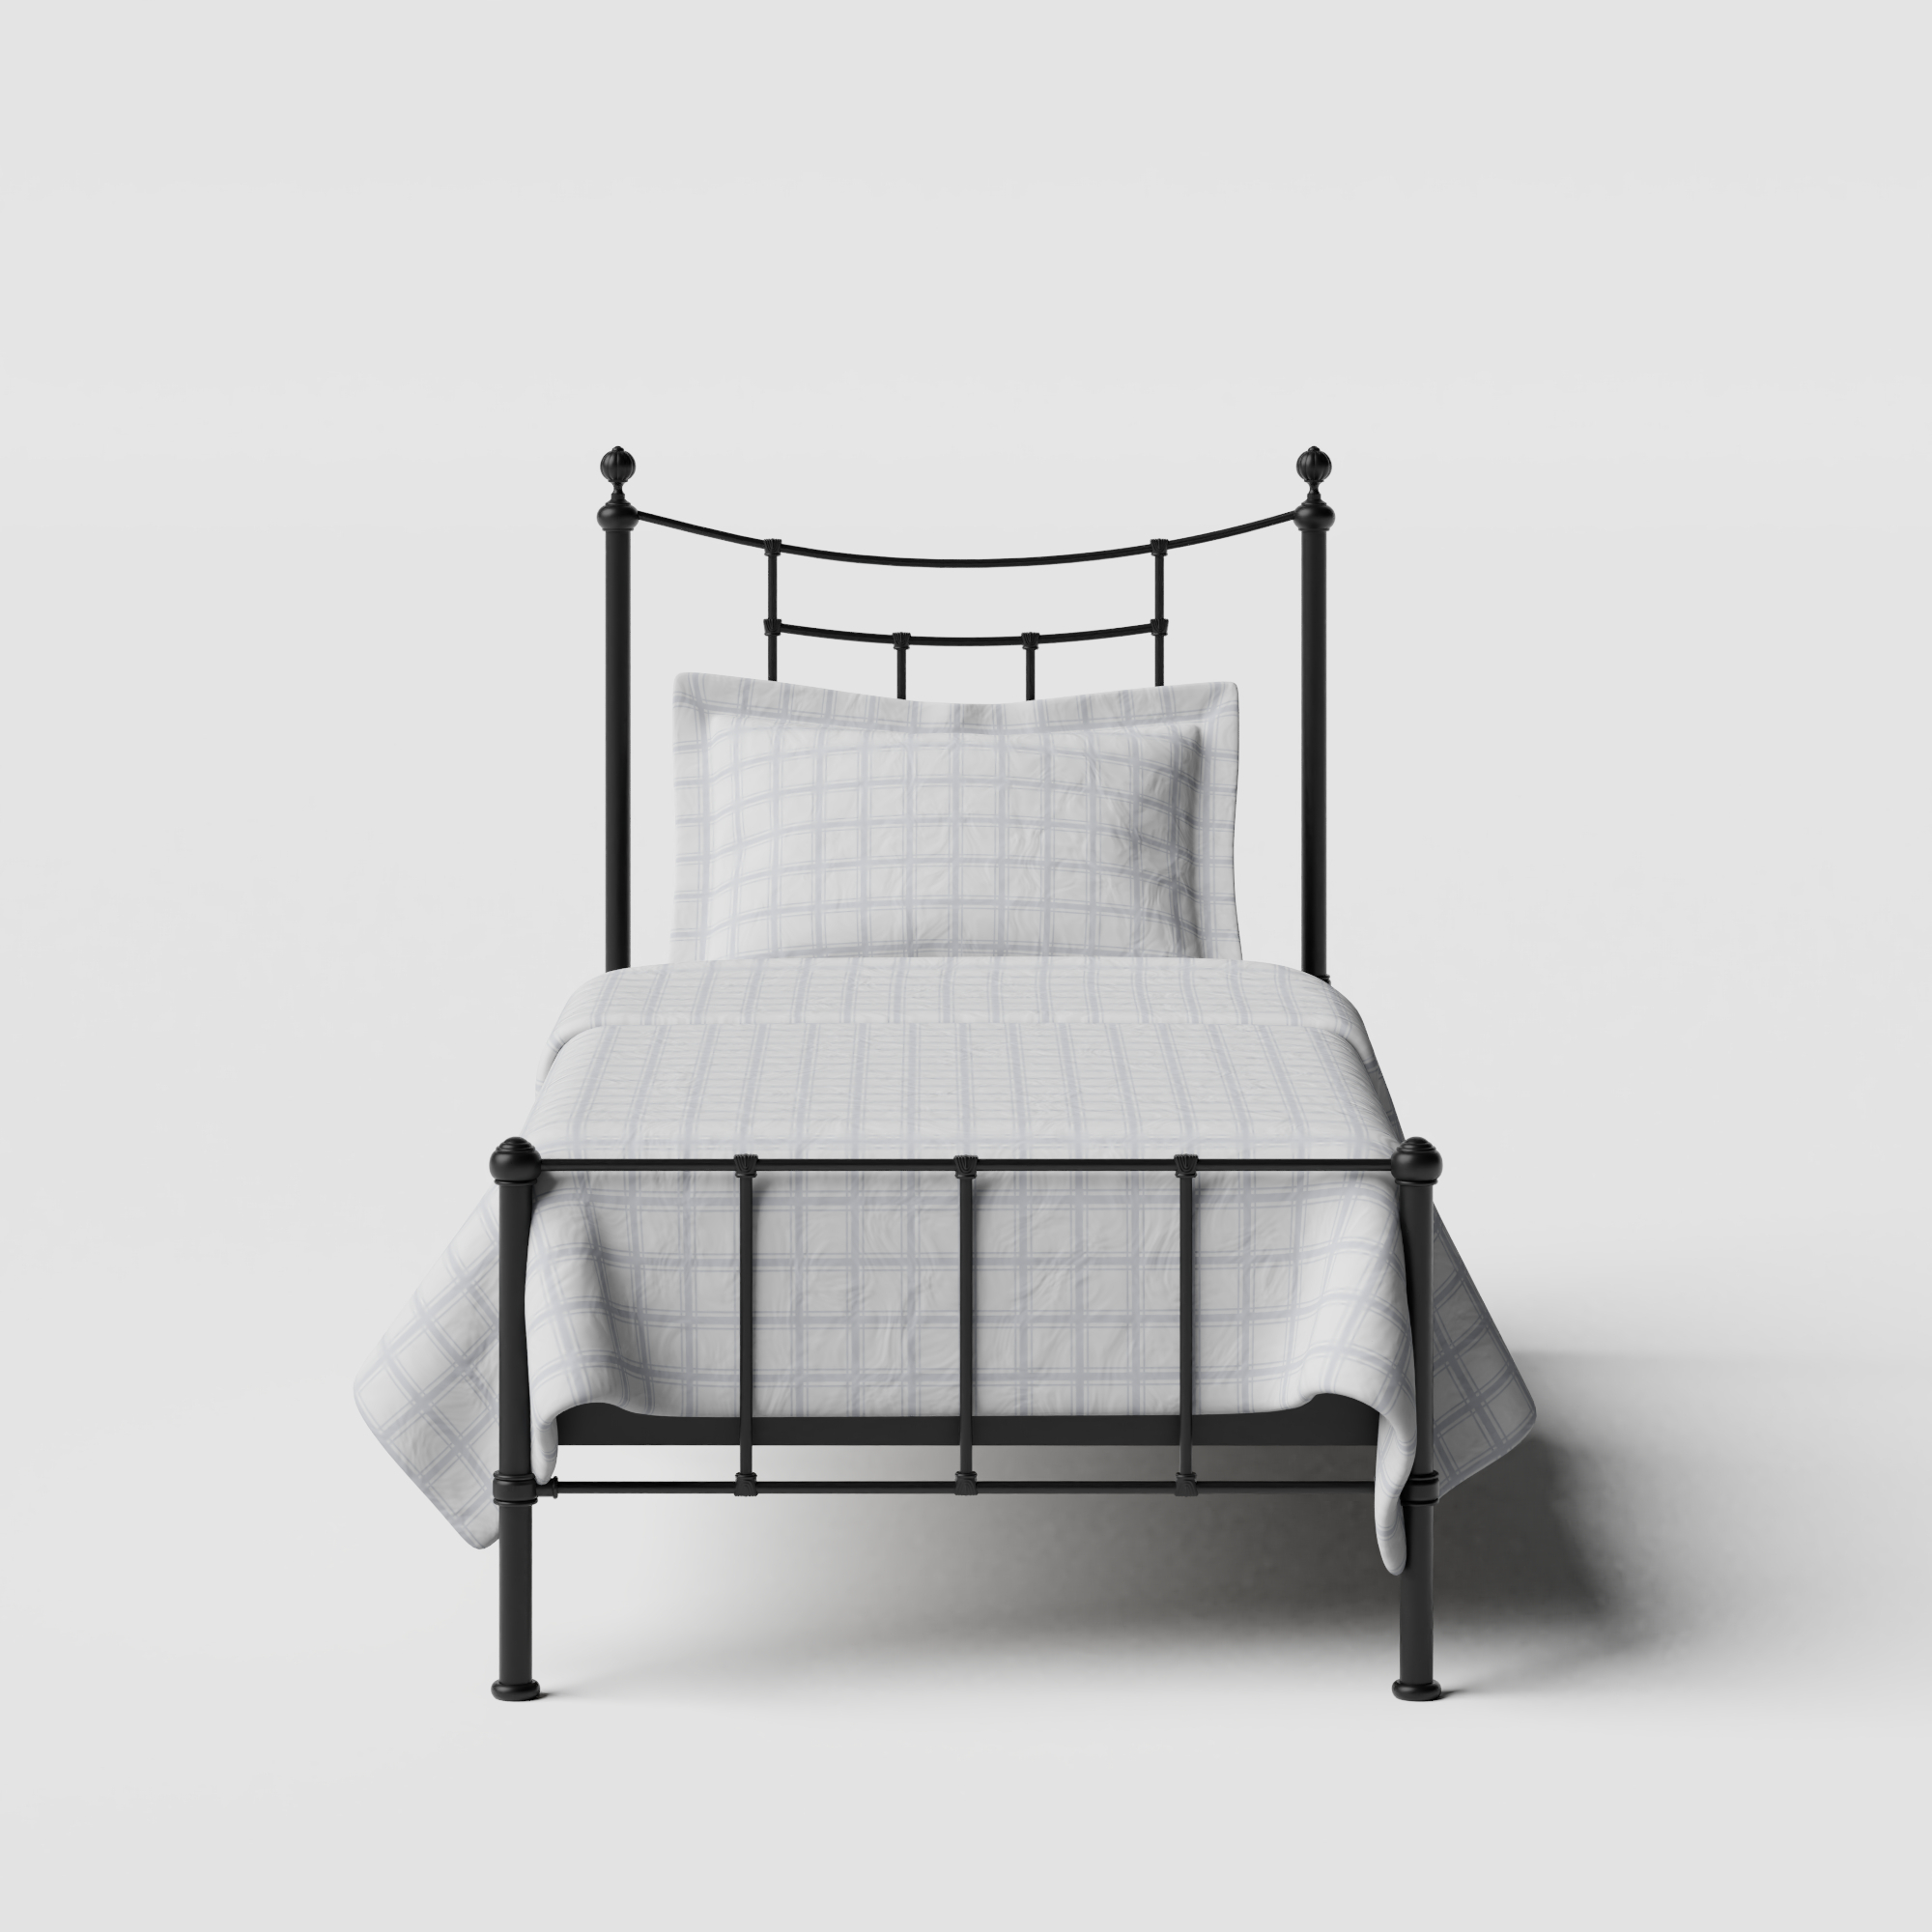 Isabelle iron/metal single bed in black